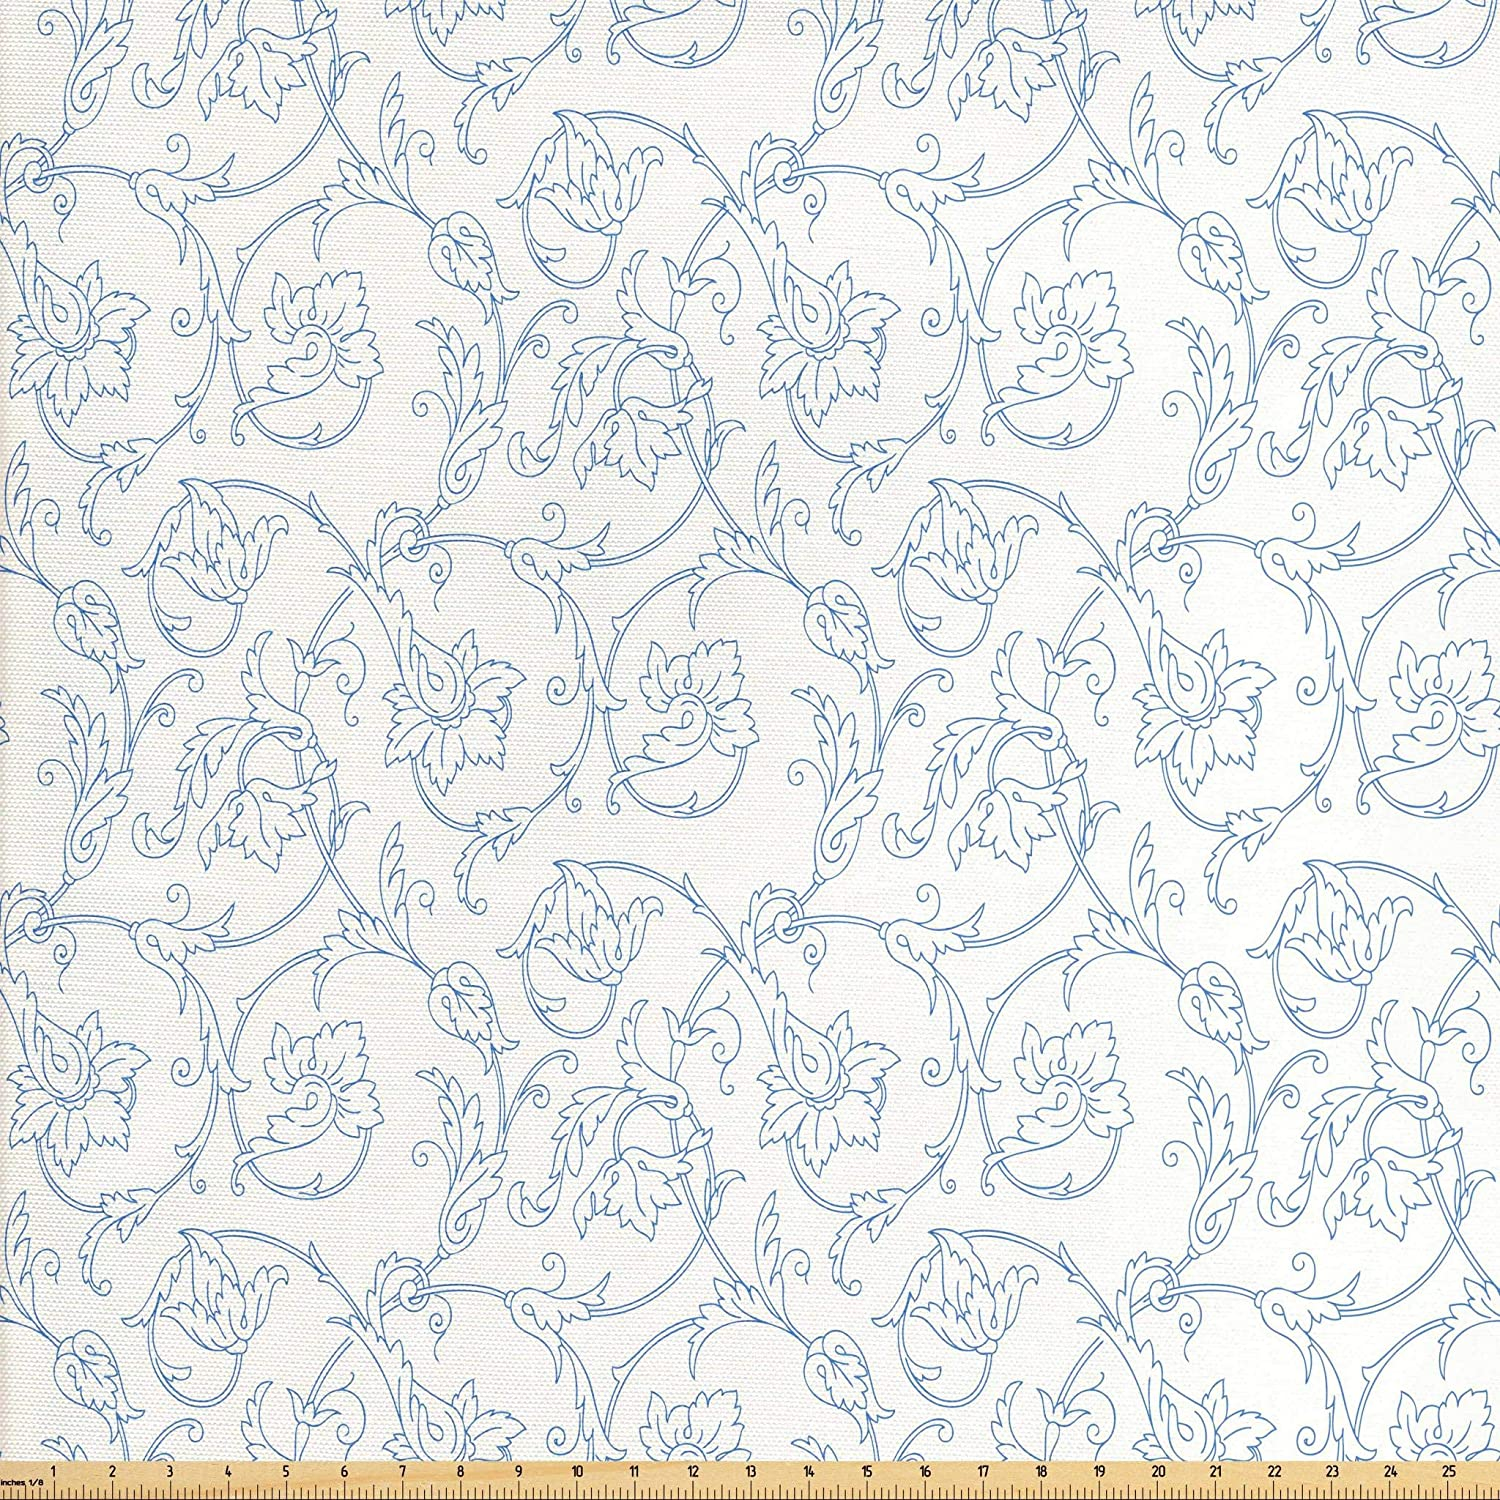 Ambesonne Floral Fabric by The Yard, Flower Orchids Bohemian Style Vintage Petals Vines Pattern French Country Style, Decorative Fabric for Upholstery and Home Accents, 3 Yards, White Blue